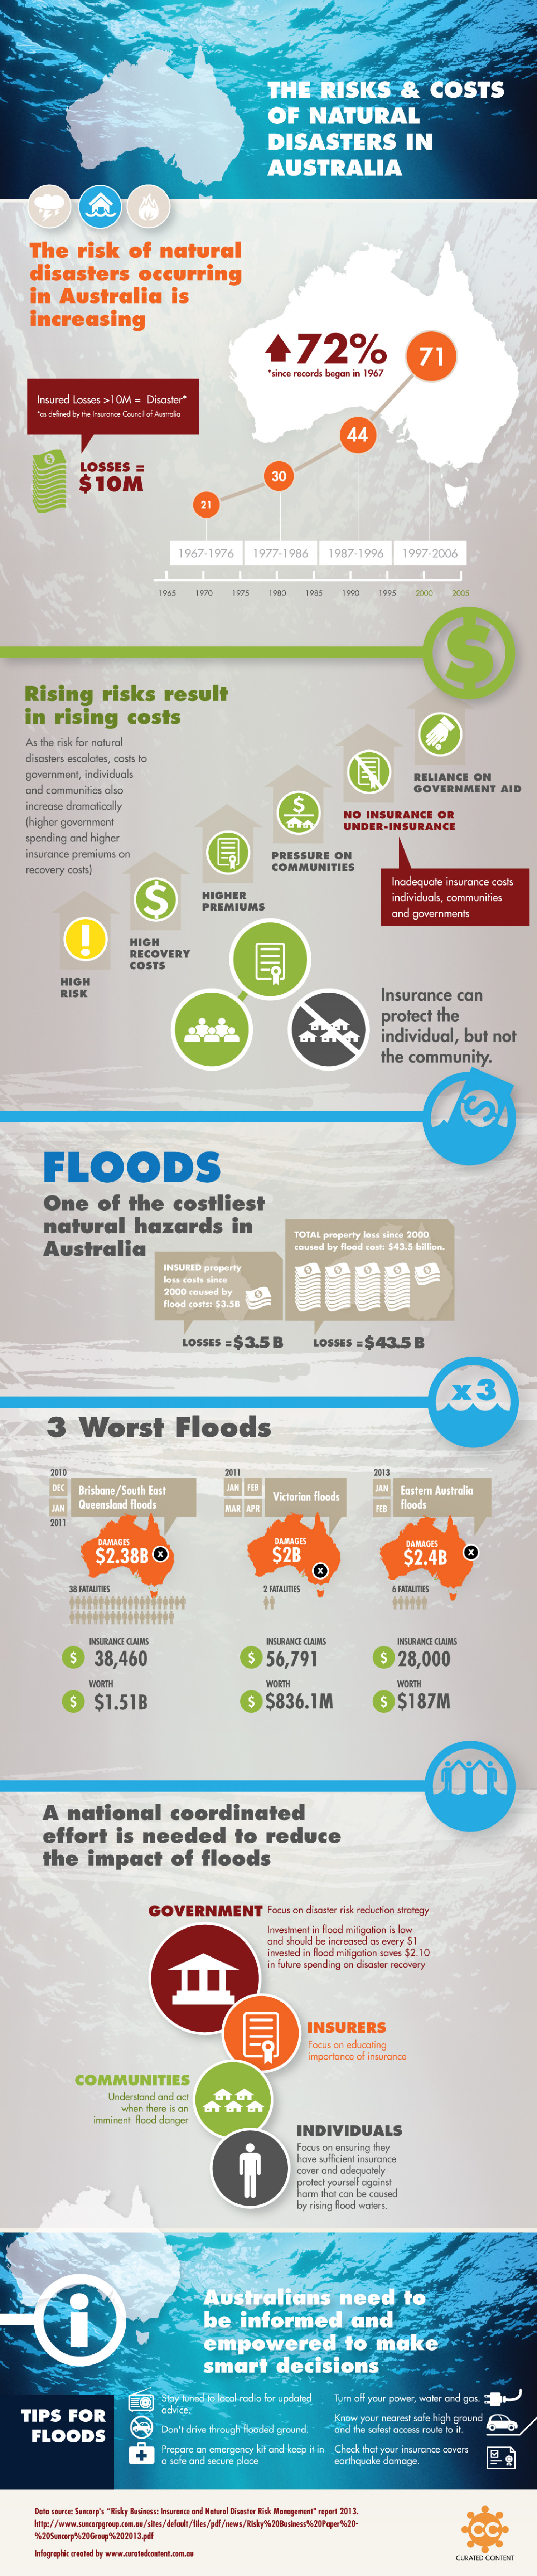 The Cost of Floods in Australia Infographic